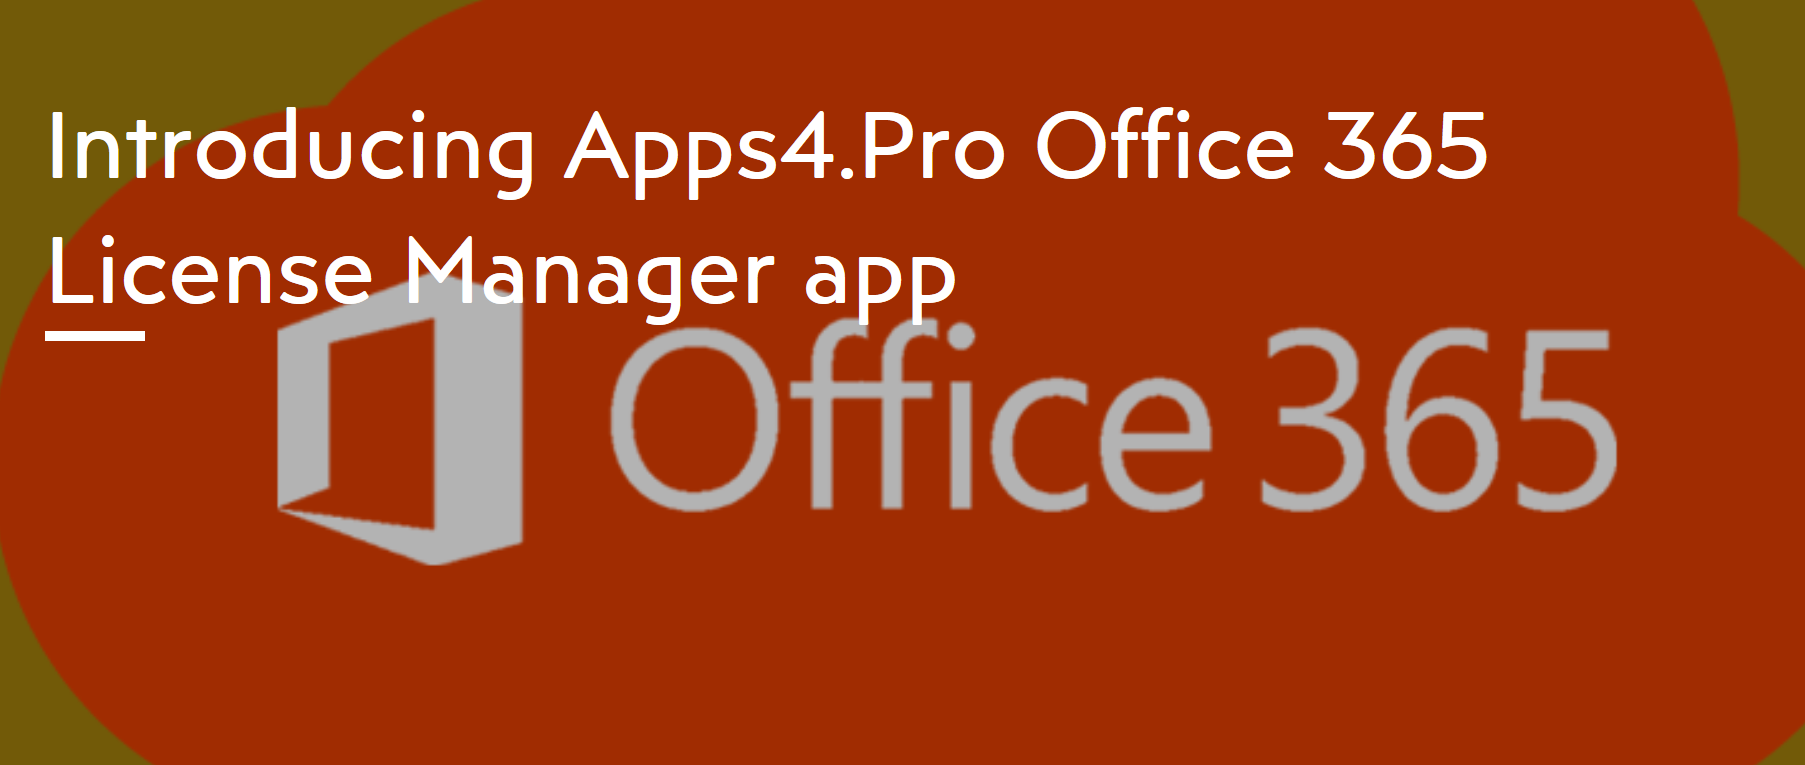 Apps4 Pro Office 365 License Manager